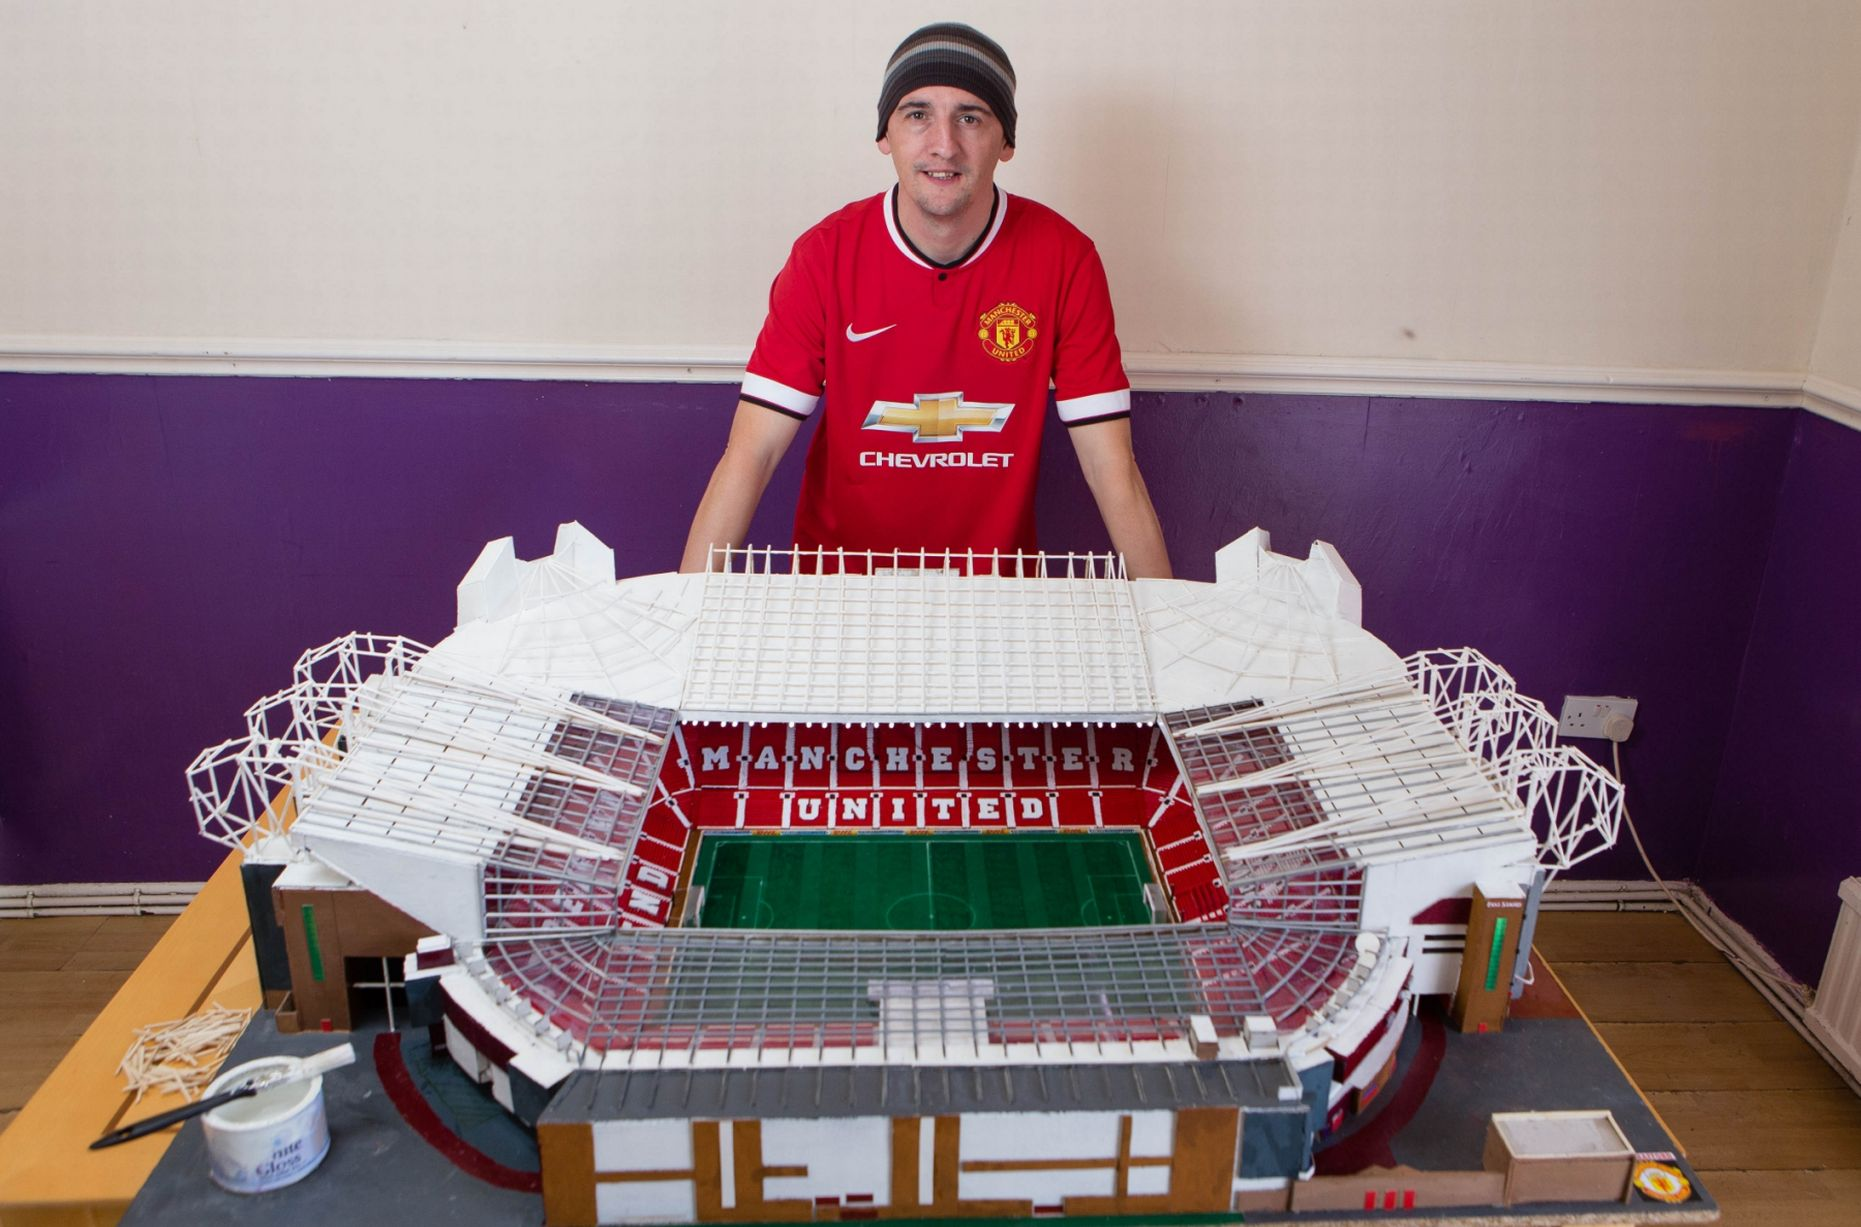 PAY-Manchester-United-fan (4)